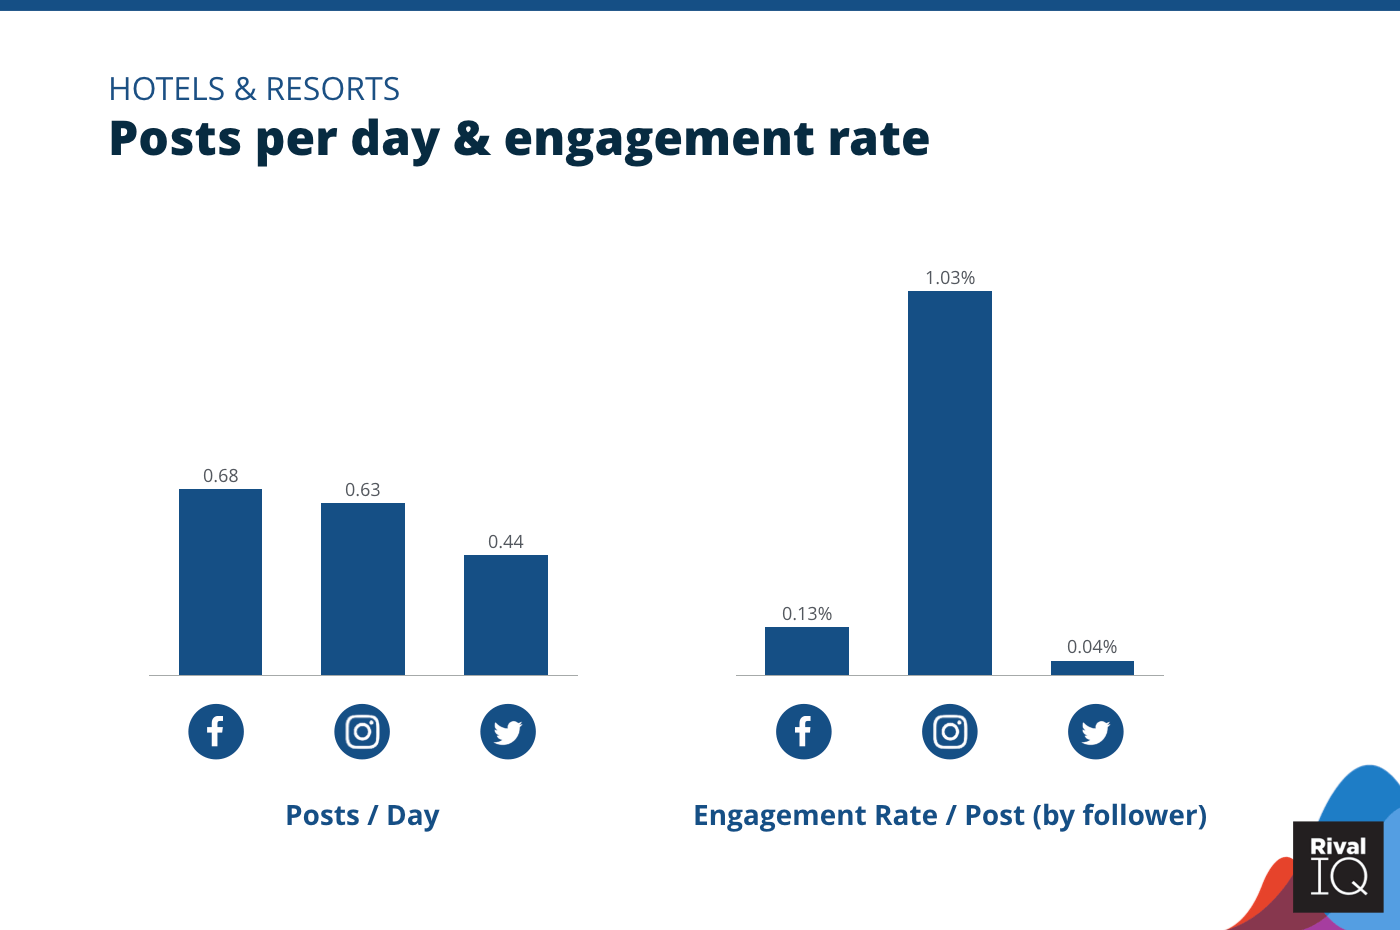 Chart of Posts per day and engagement rate per post across all channels, Hotels & Resorts